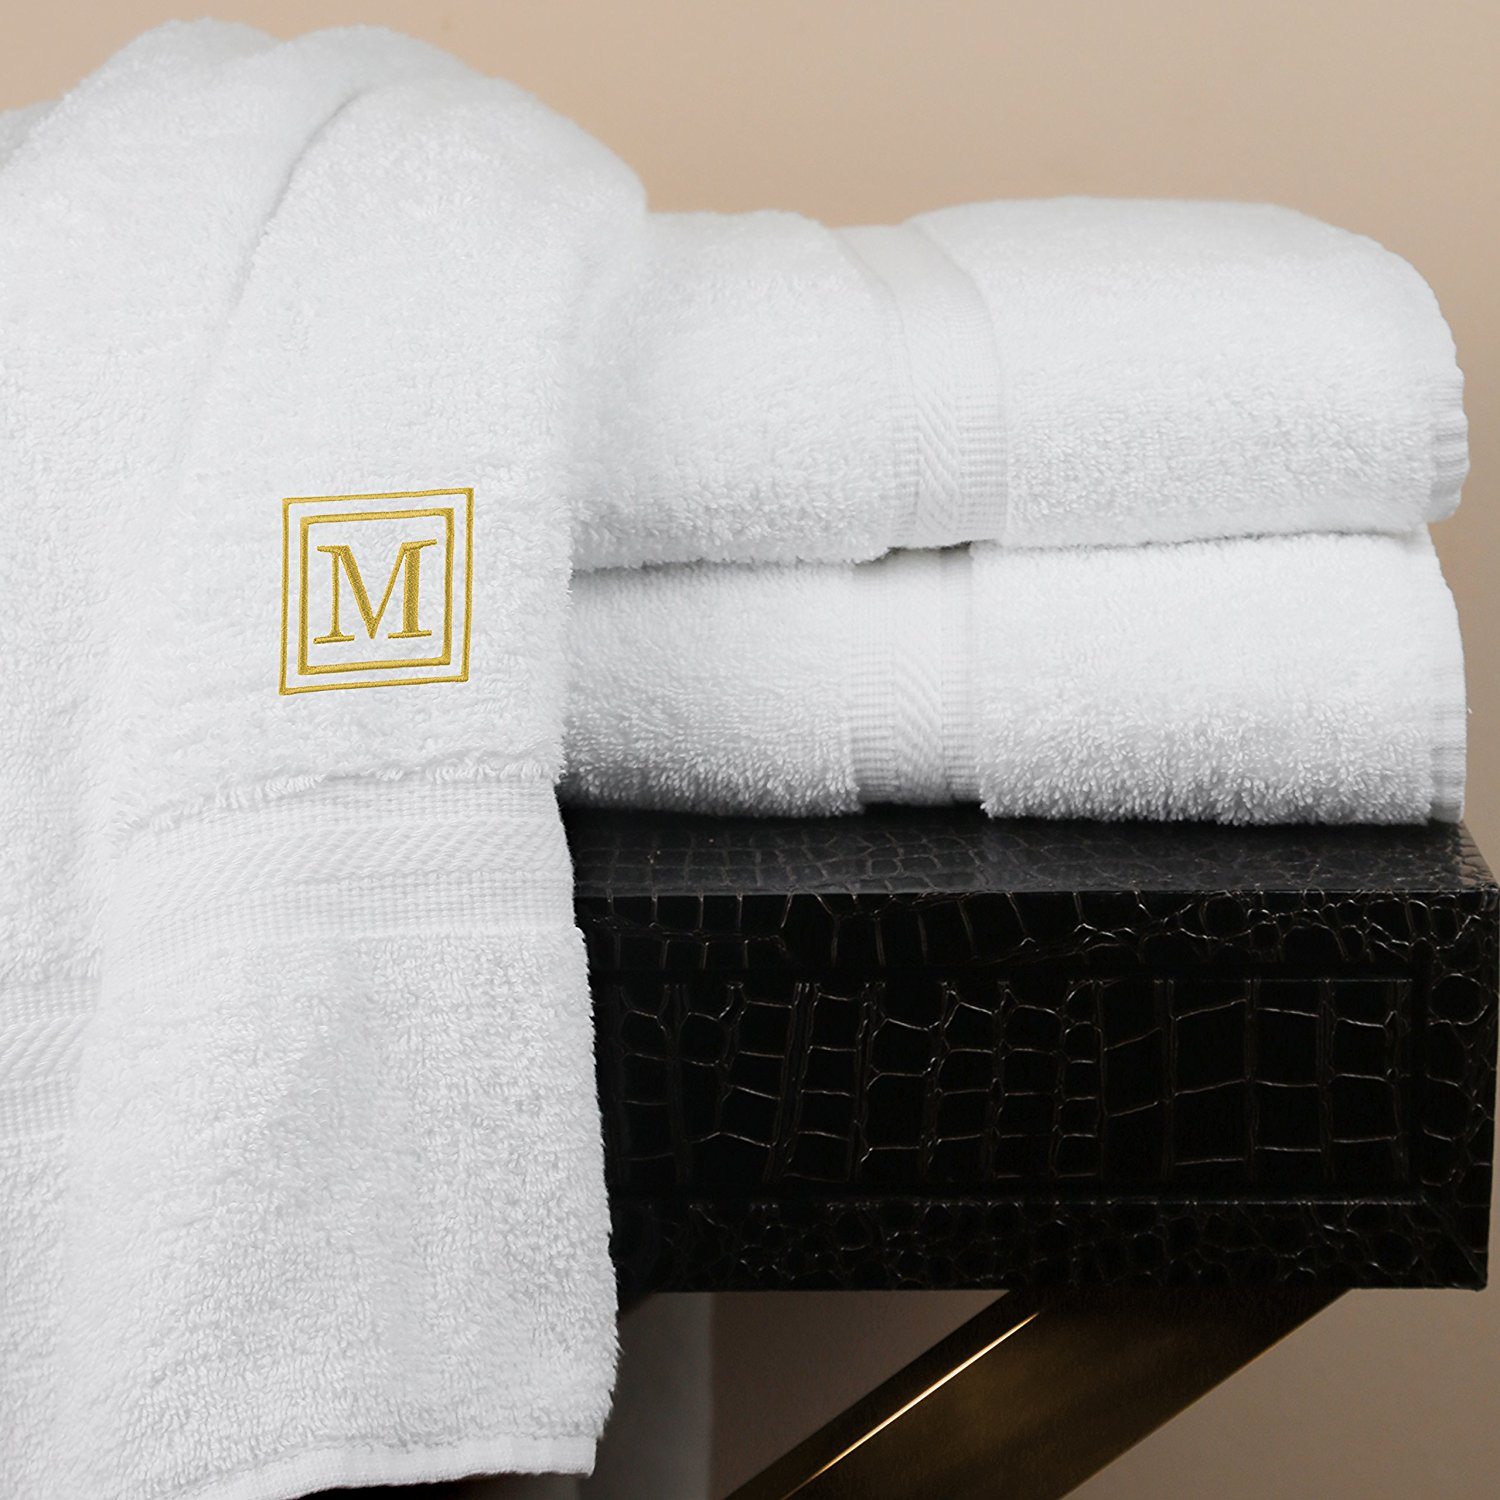 Luxor Linens - Oversize Bath Towel Set - Solano Collection 100% Egyptian  Cotton Bath Towels - Fully Customized Luxury Bath Towel Sets for Home 3febc3a06